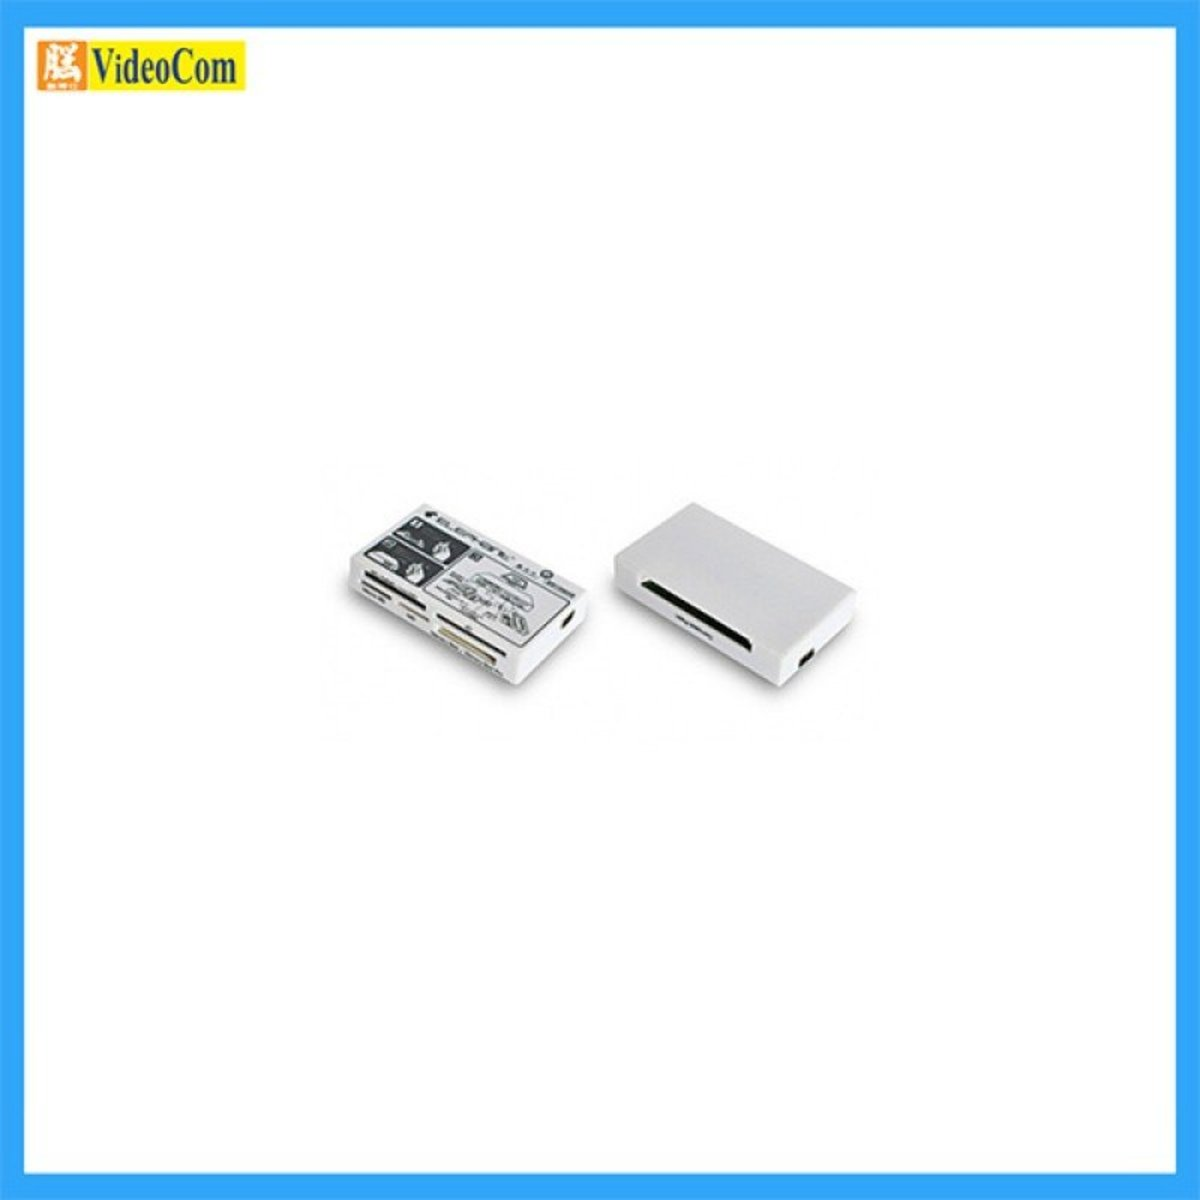 65 IN 1 300x RECOVERY MINI CARD READER (WHITE)